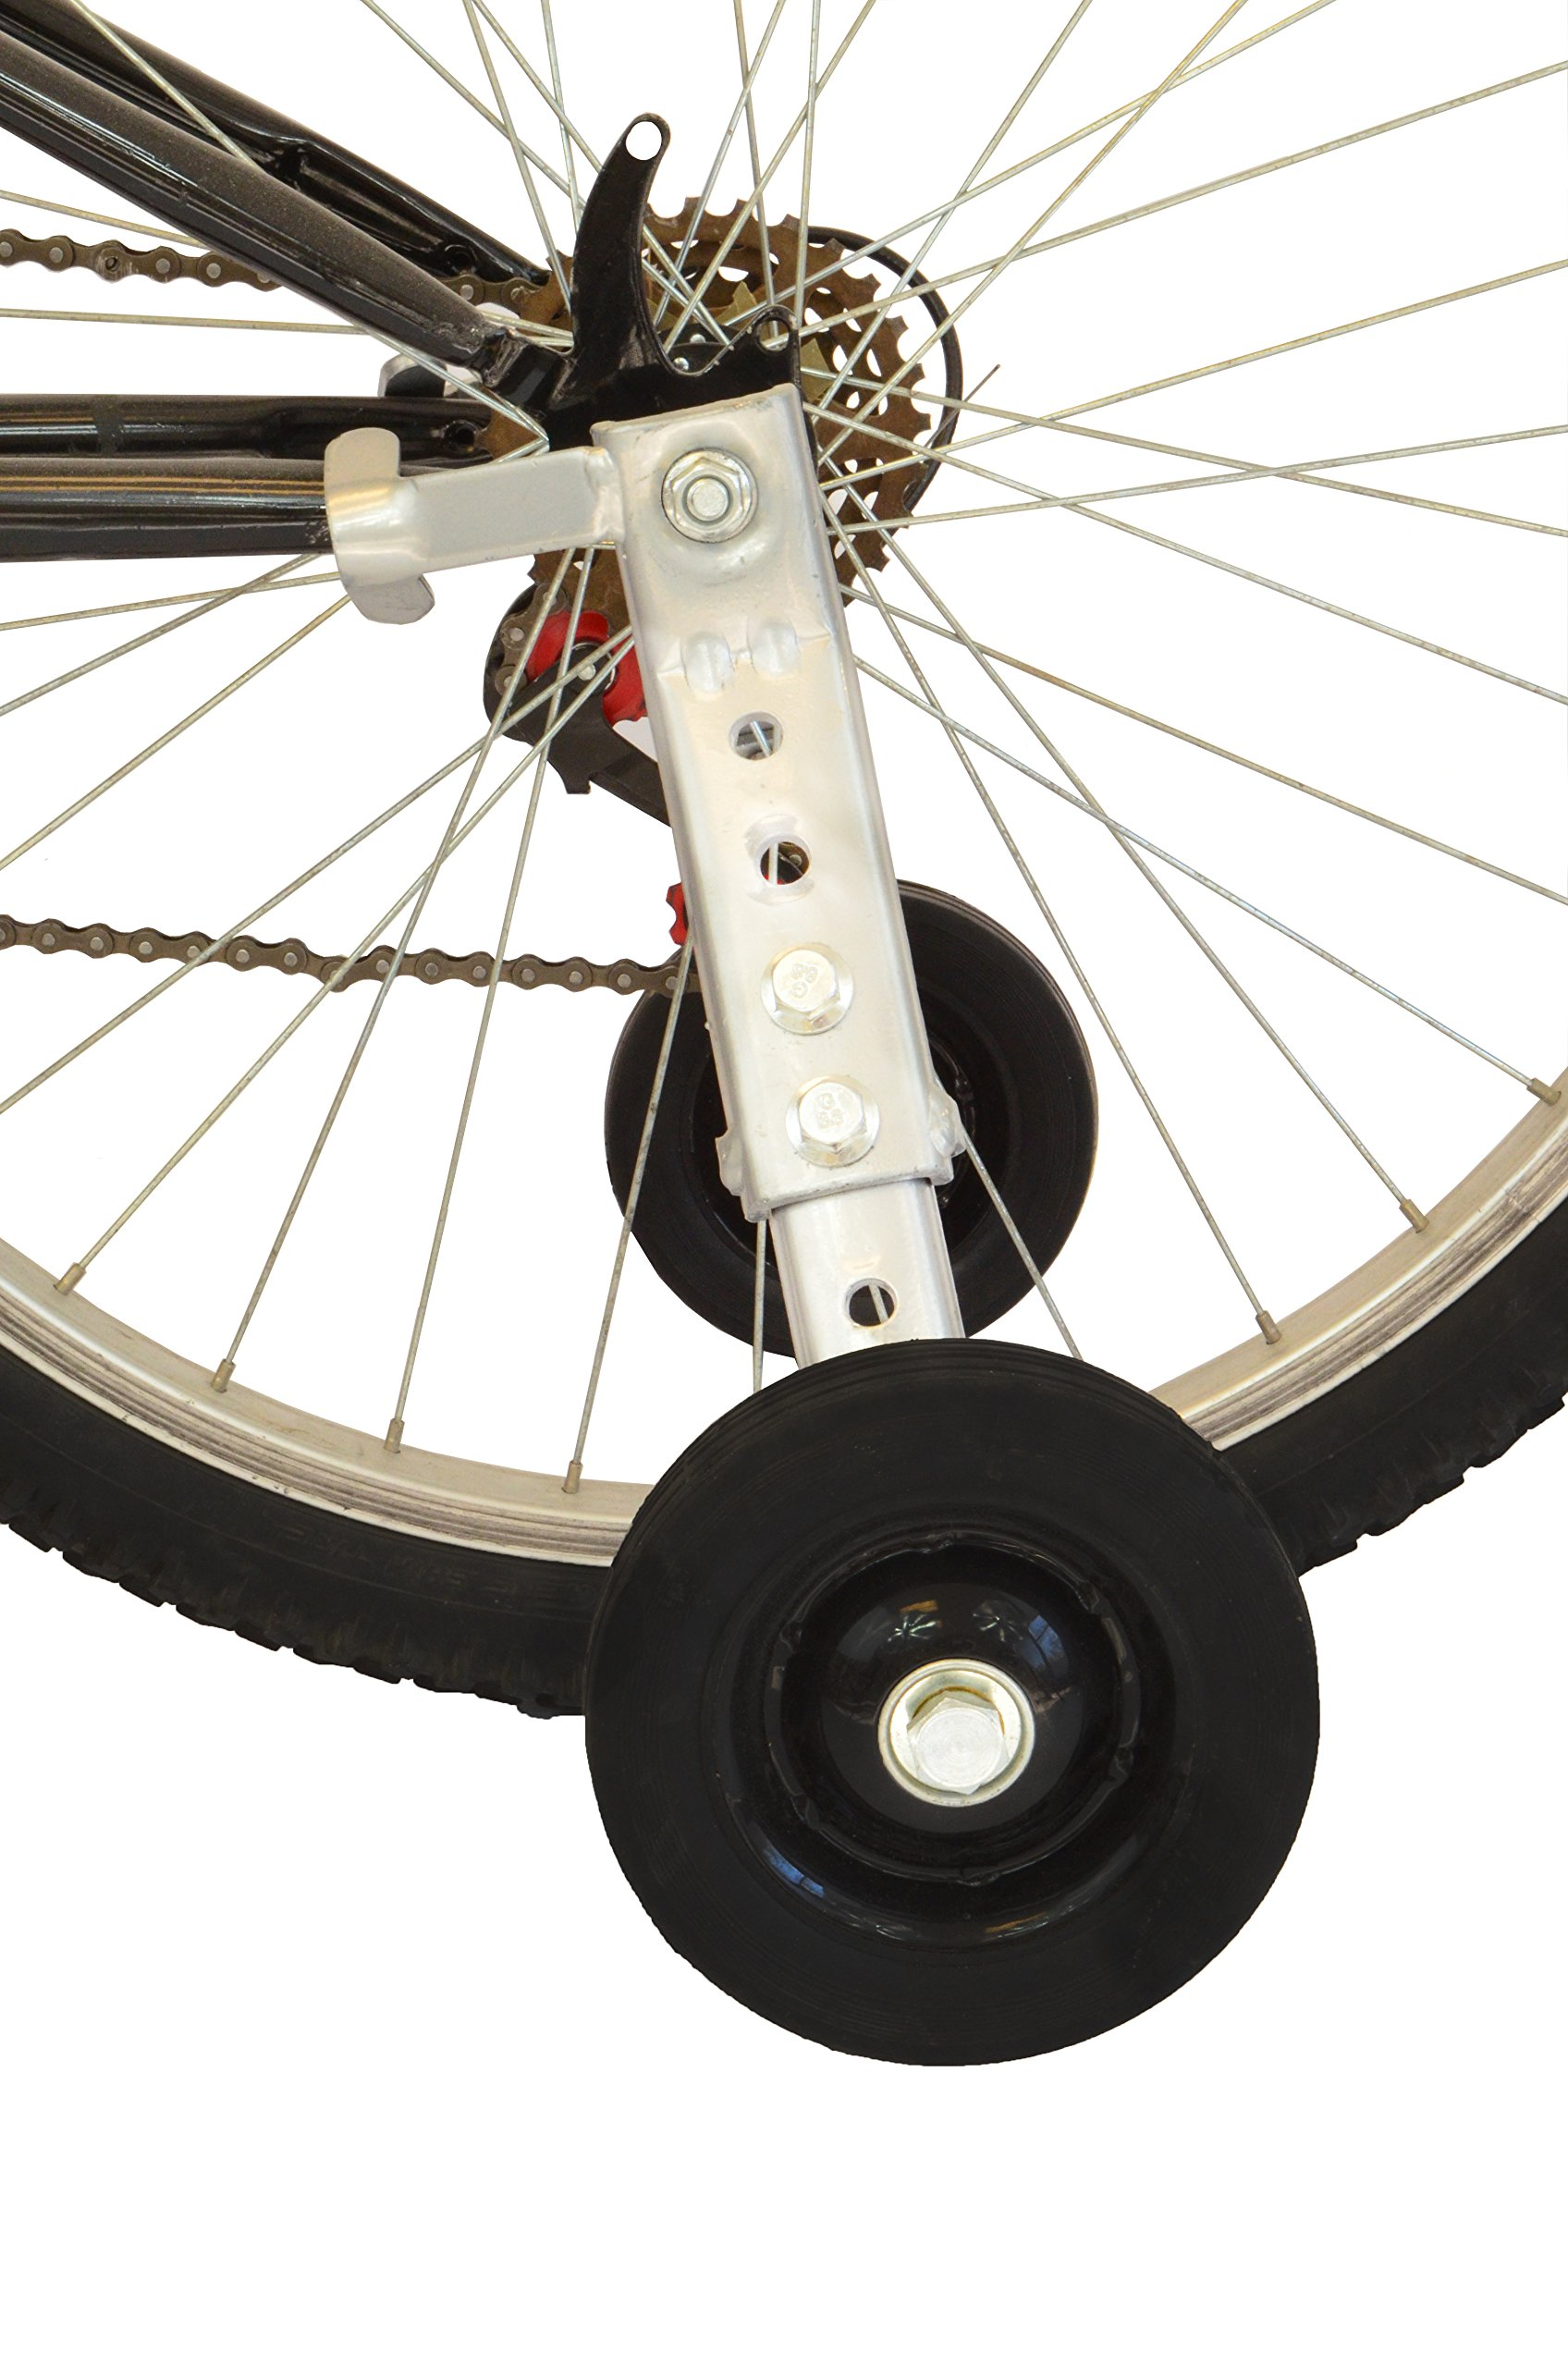 "Lumintrail Heavy Duty Adjustable Bike Training Wheels for 20"" to 26"" Bicycles"